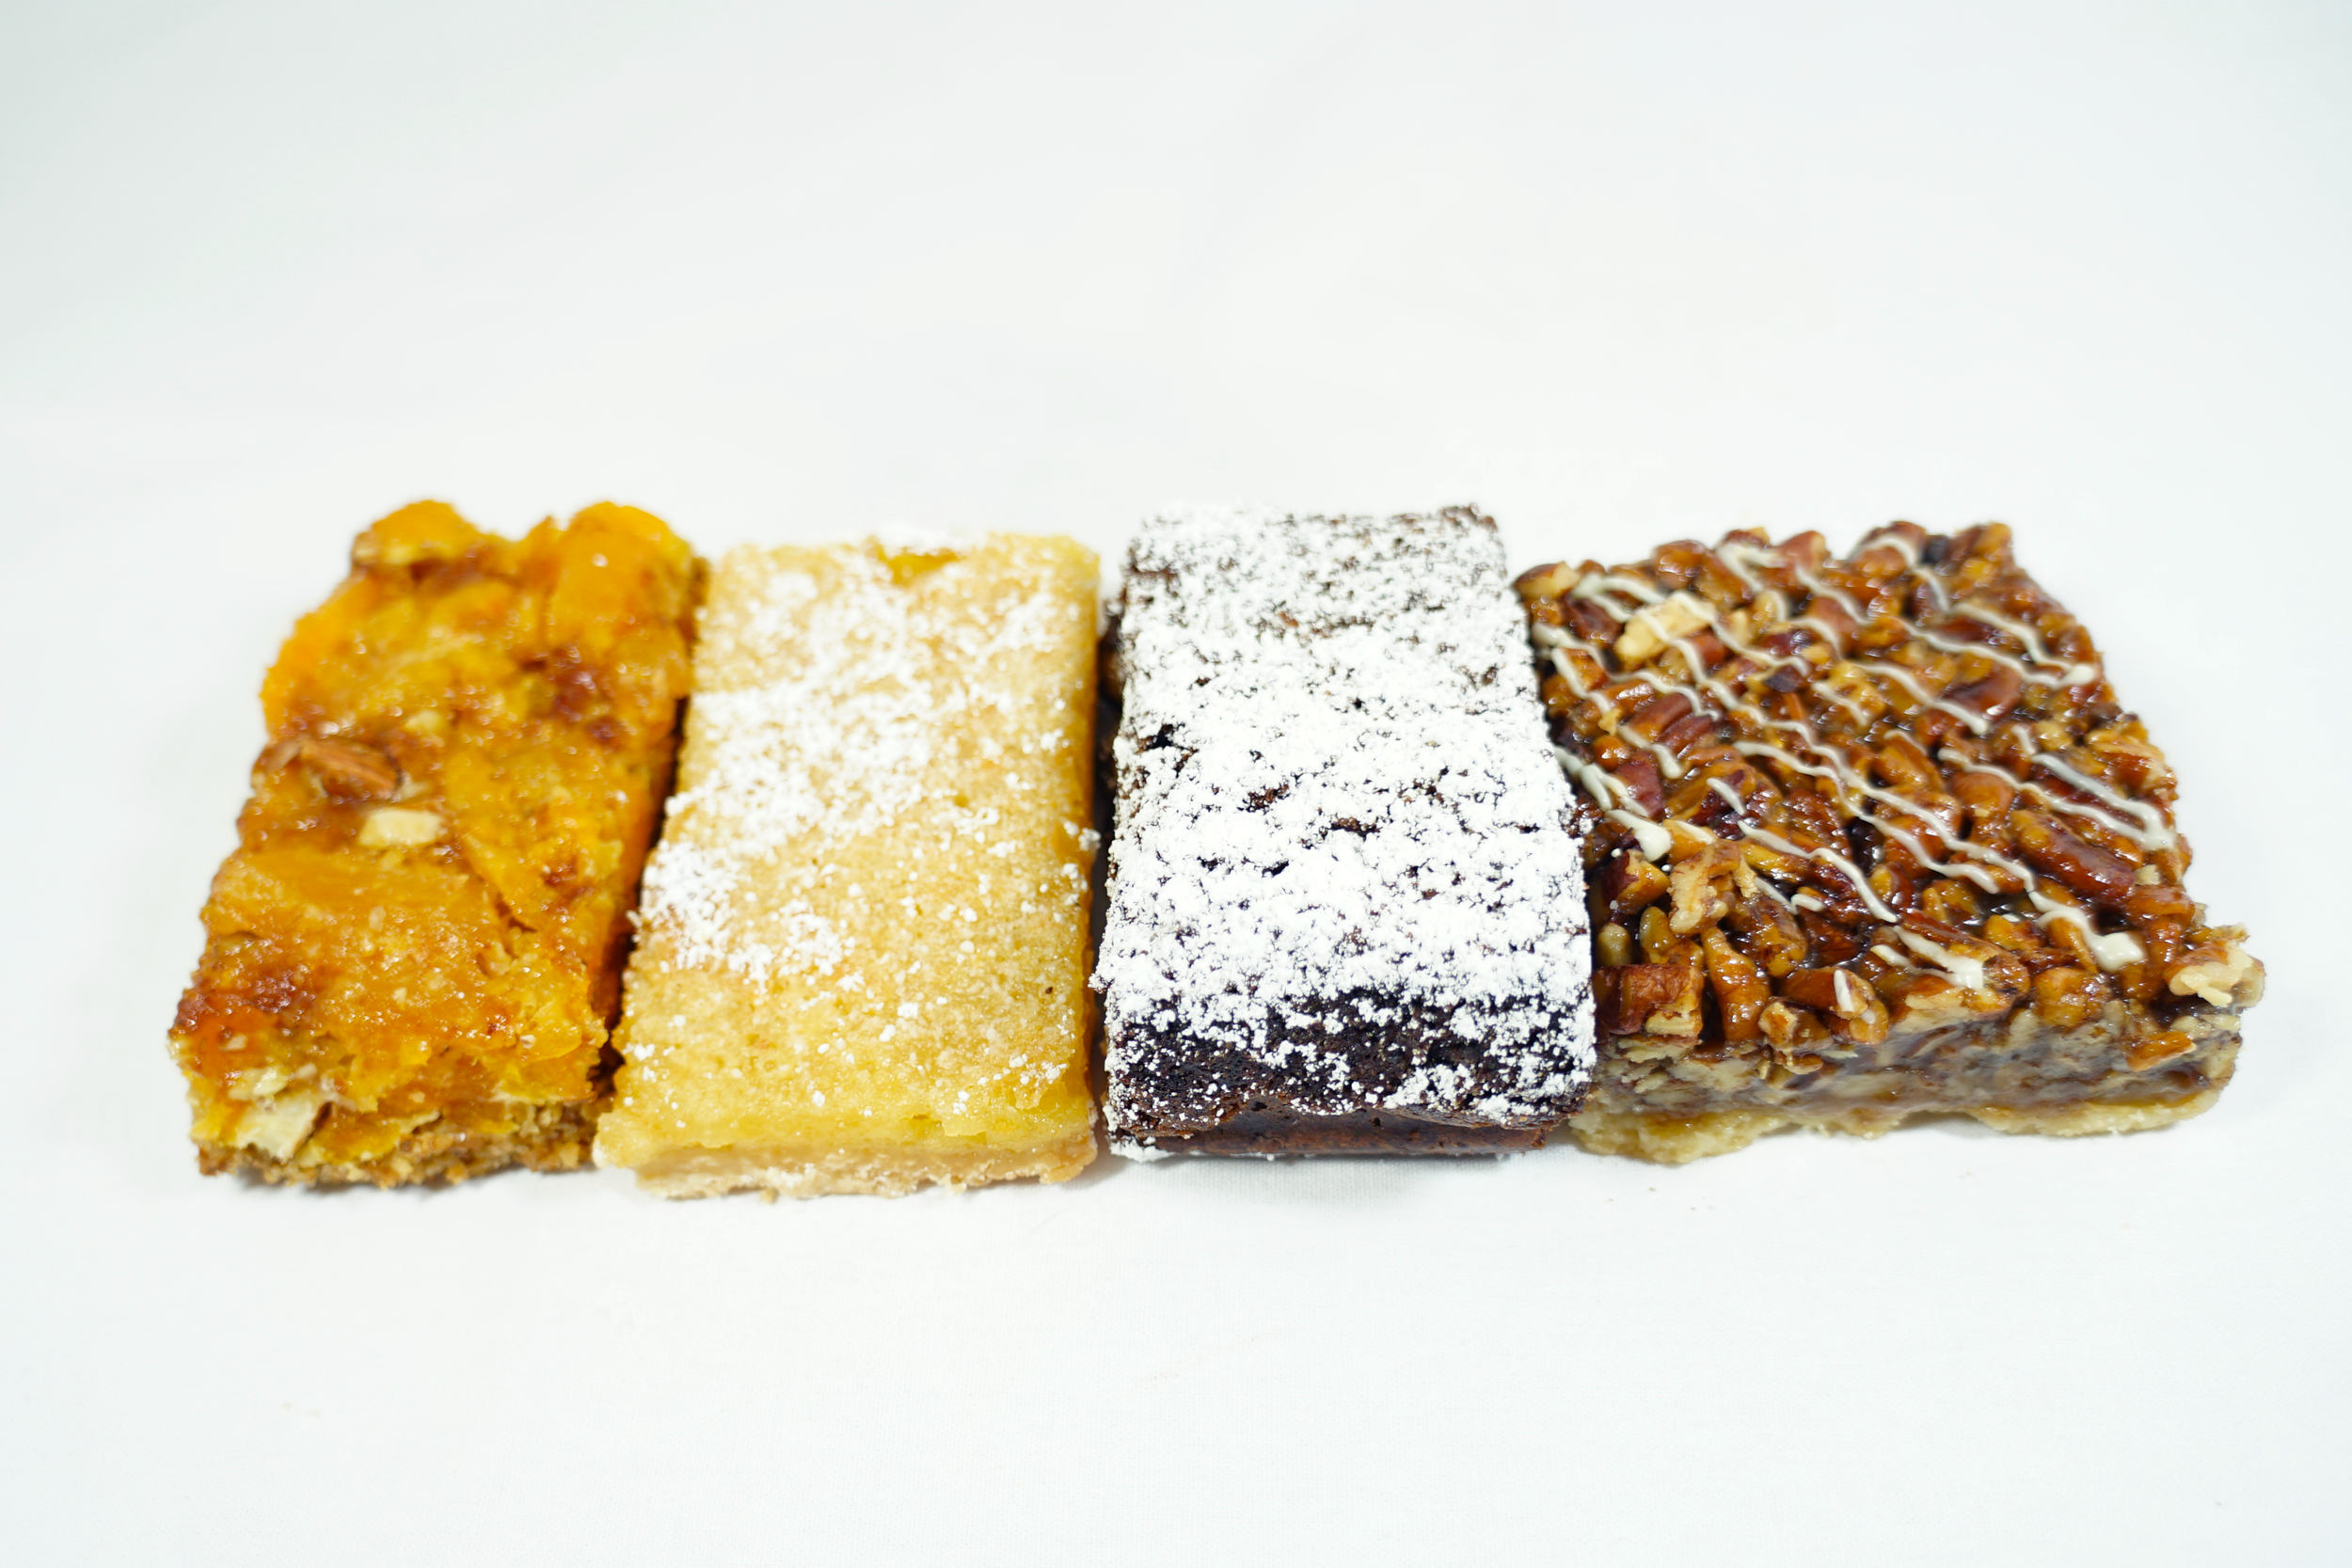 Bars - Lemon, Apricot Almond, Brownie with Walnuts, or Caramel Pecan